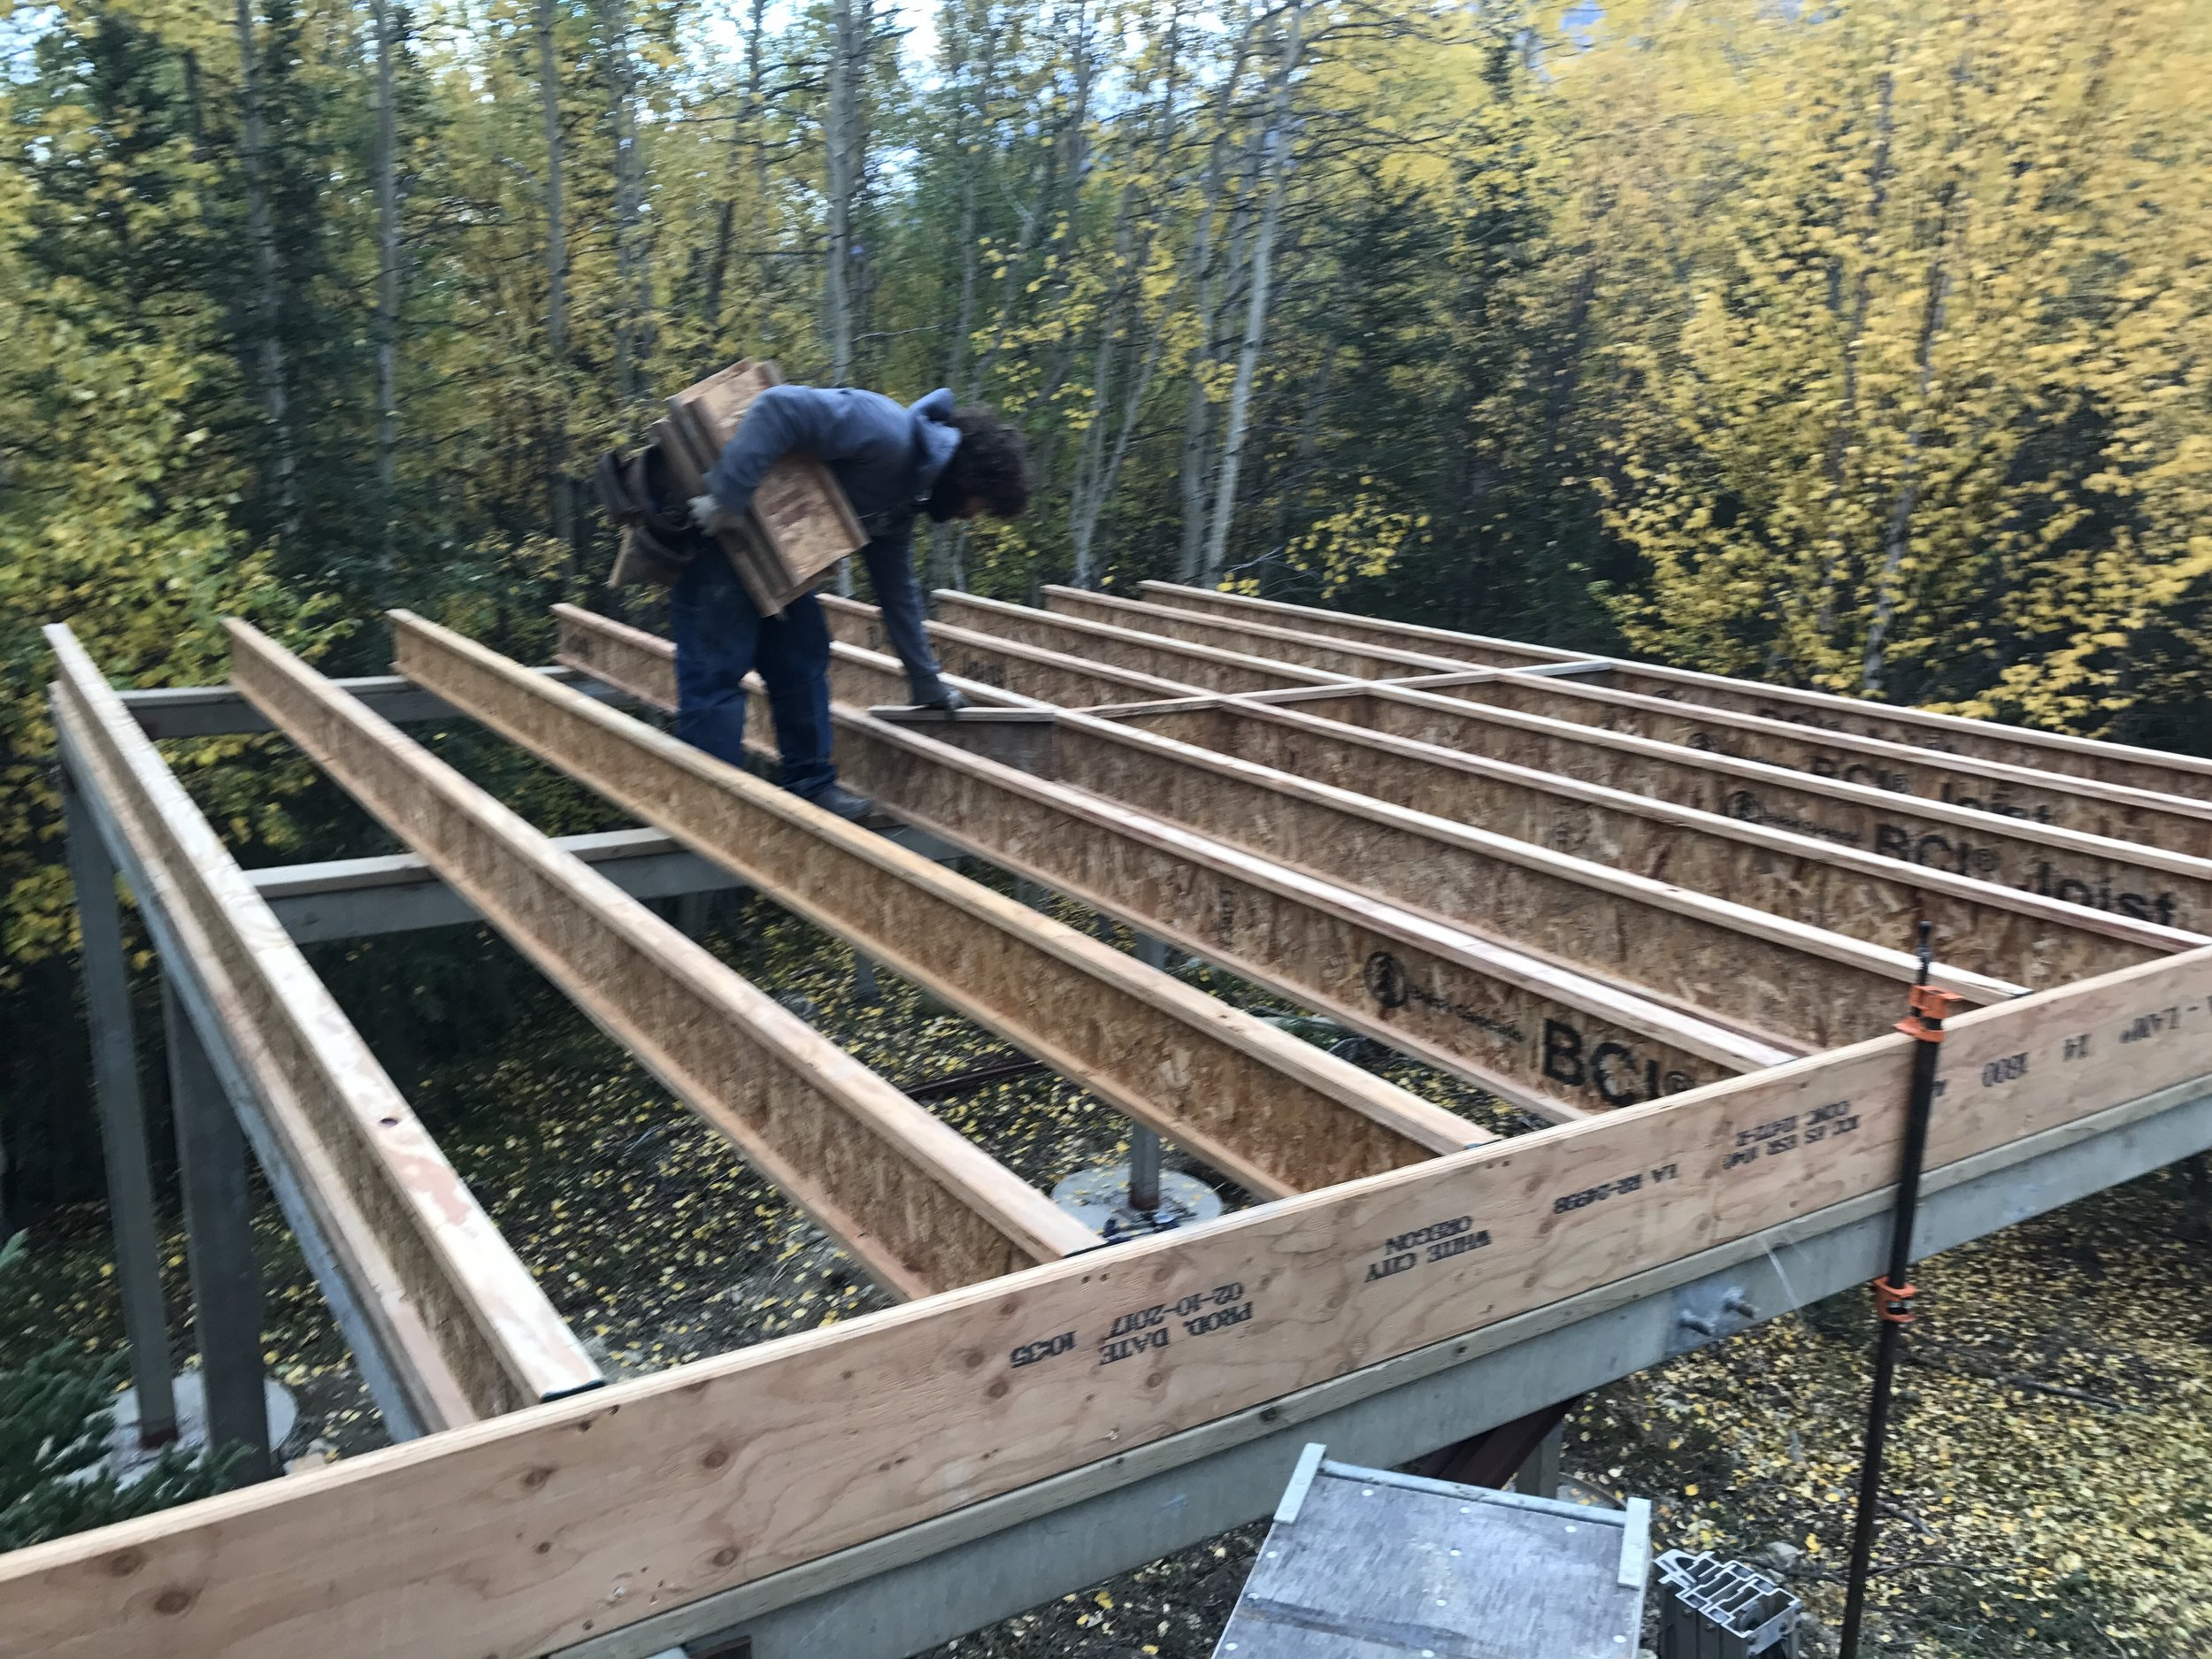 """Pressure treated 2x6s were attached to the elevated metal frame and BCIs were attached to laminated lap boards to make the frame. 1 1/8"""" tongue and groove decking was glued and nailed down to form a solid deck and base for the timber frame."""